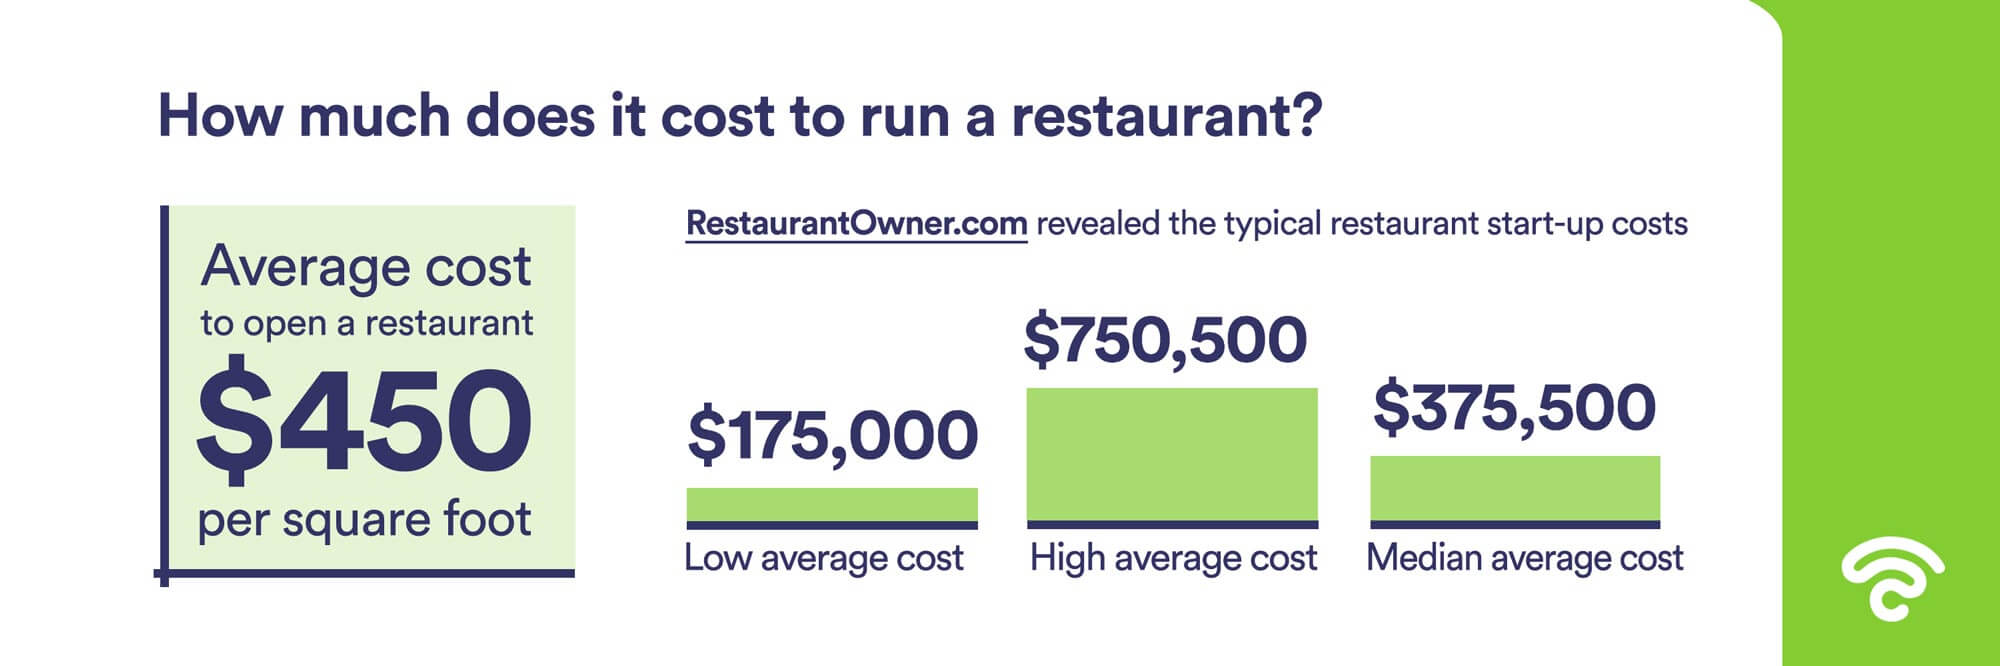 how much does it cost to run a restaurant